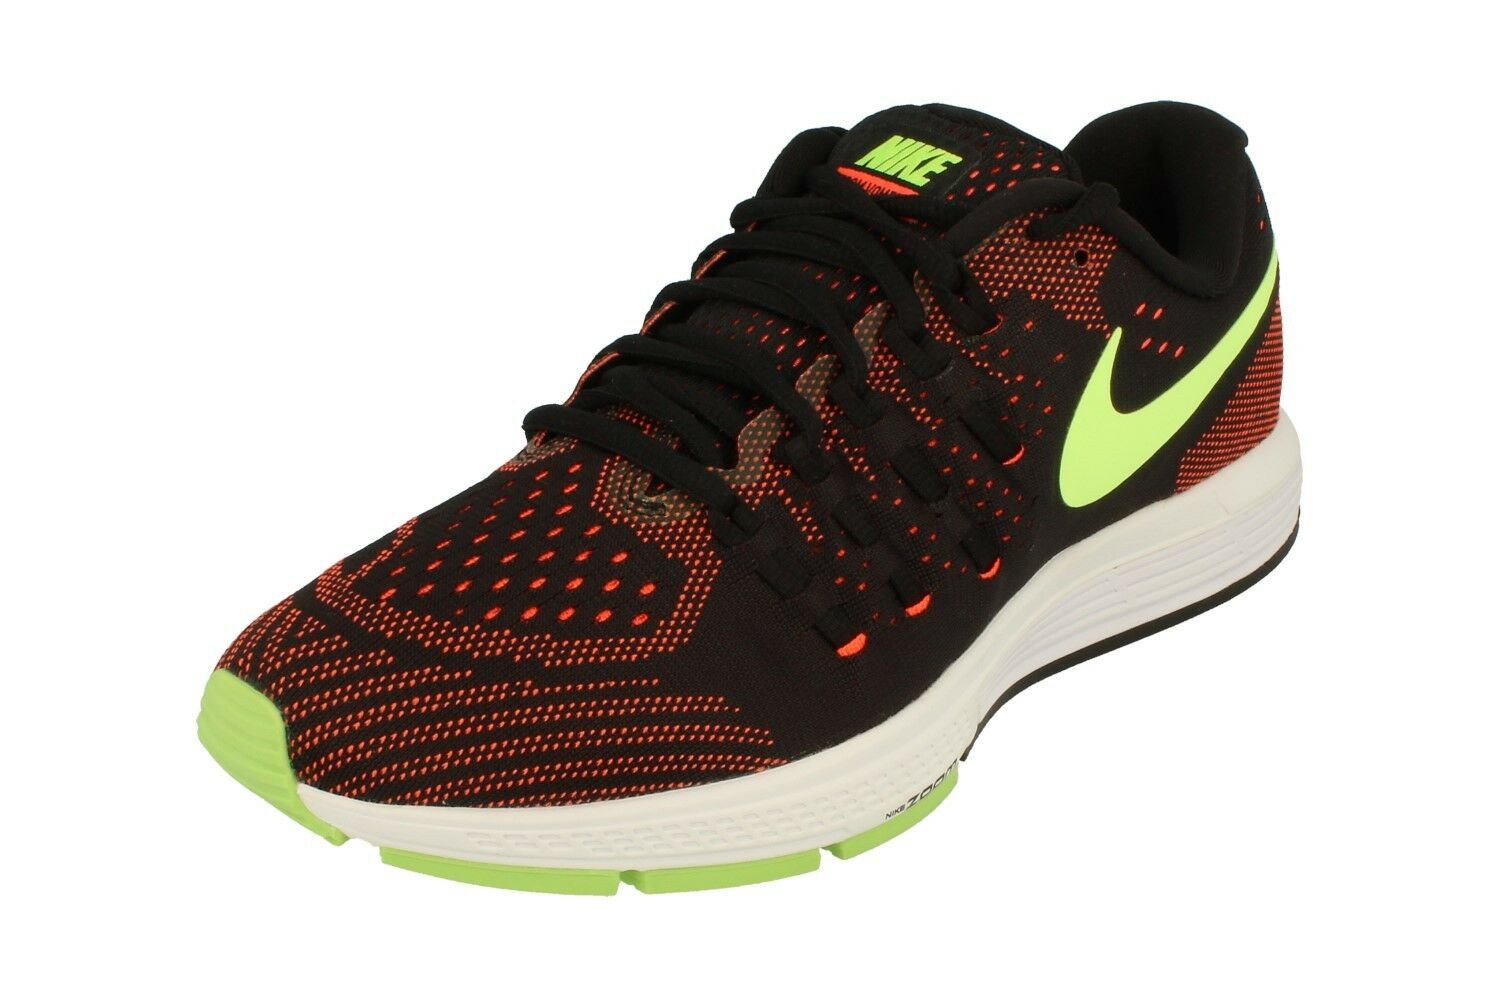 Nike Air Zoom Vomero 11 Course Hommes paniers 818099 paniers 007